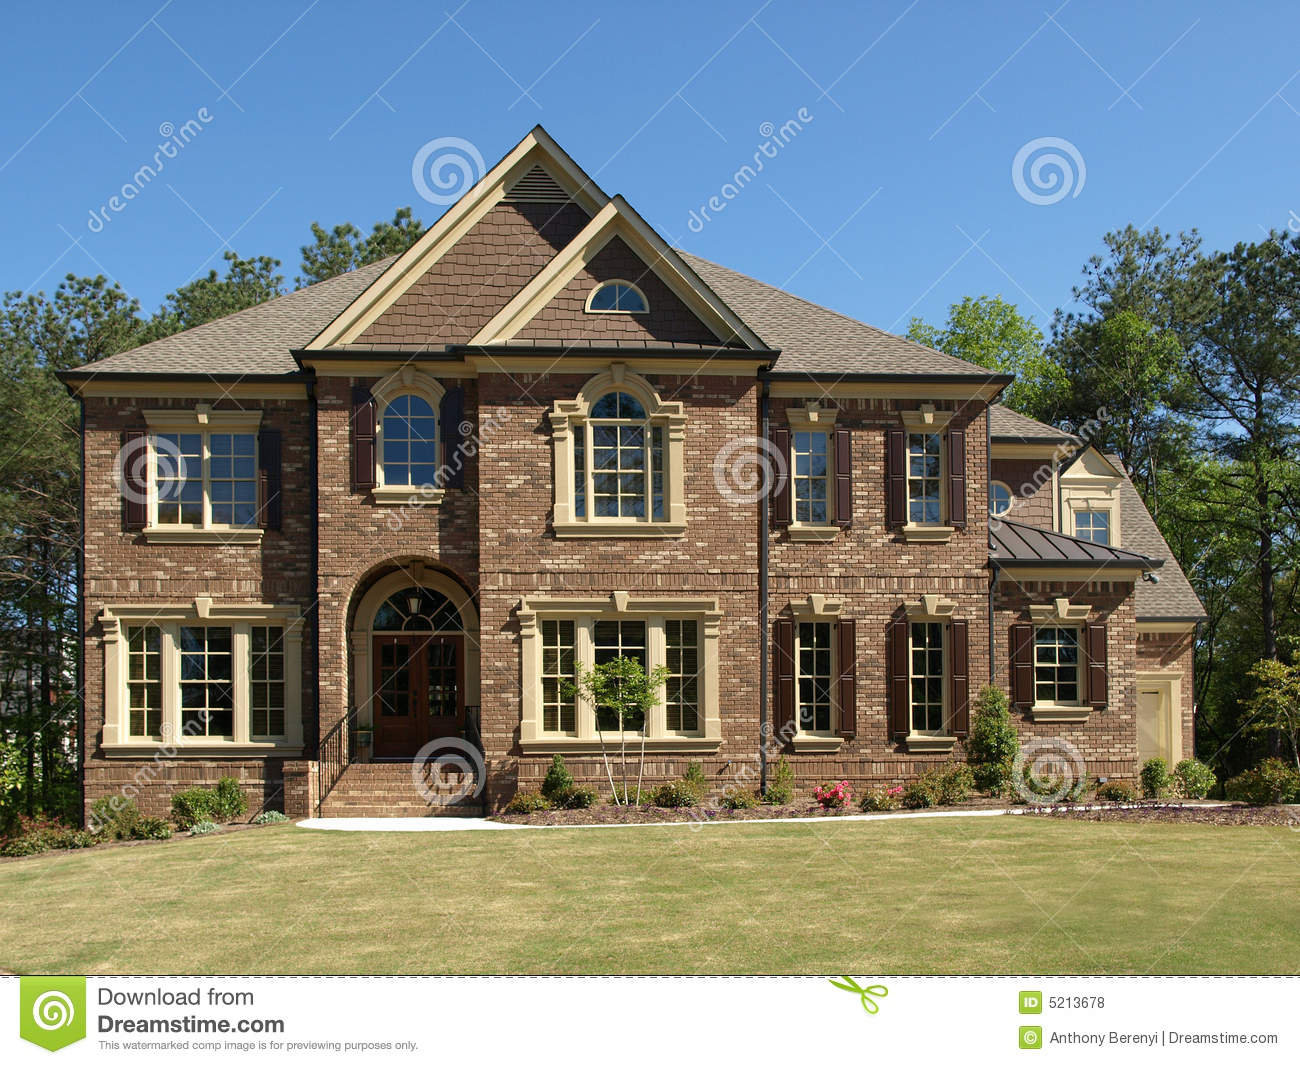 Luxury Model Home 5 Royalty Free Stock Photos Image 5213678